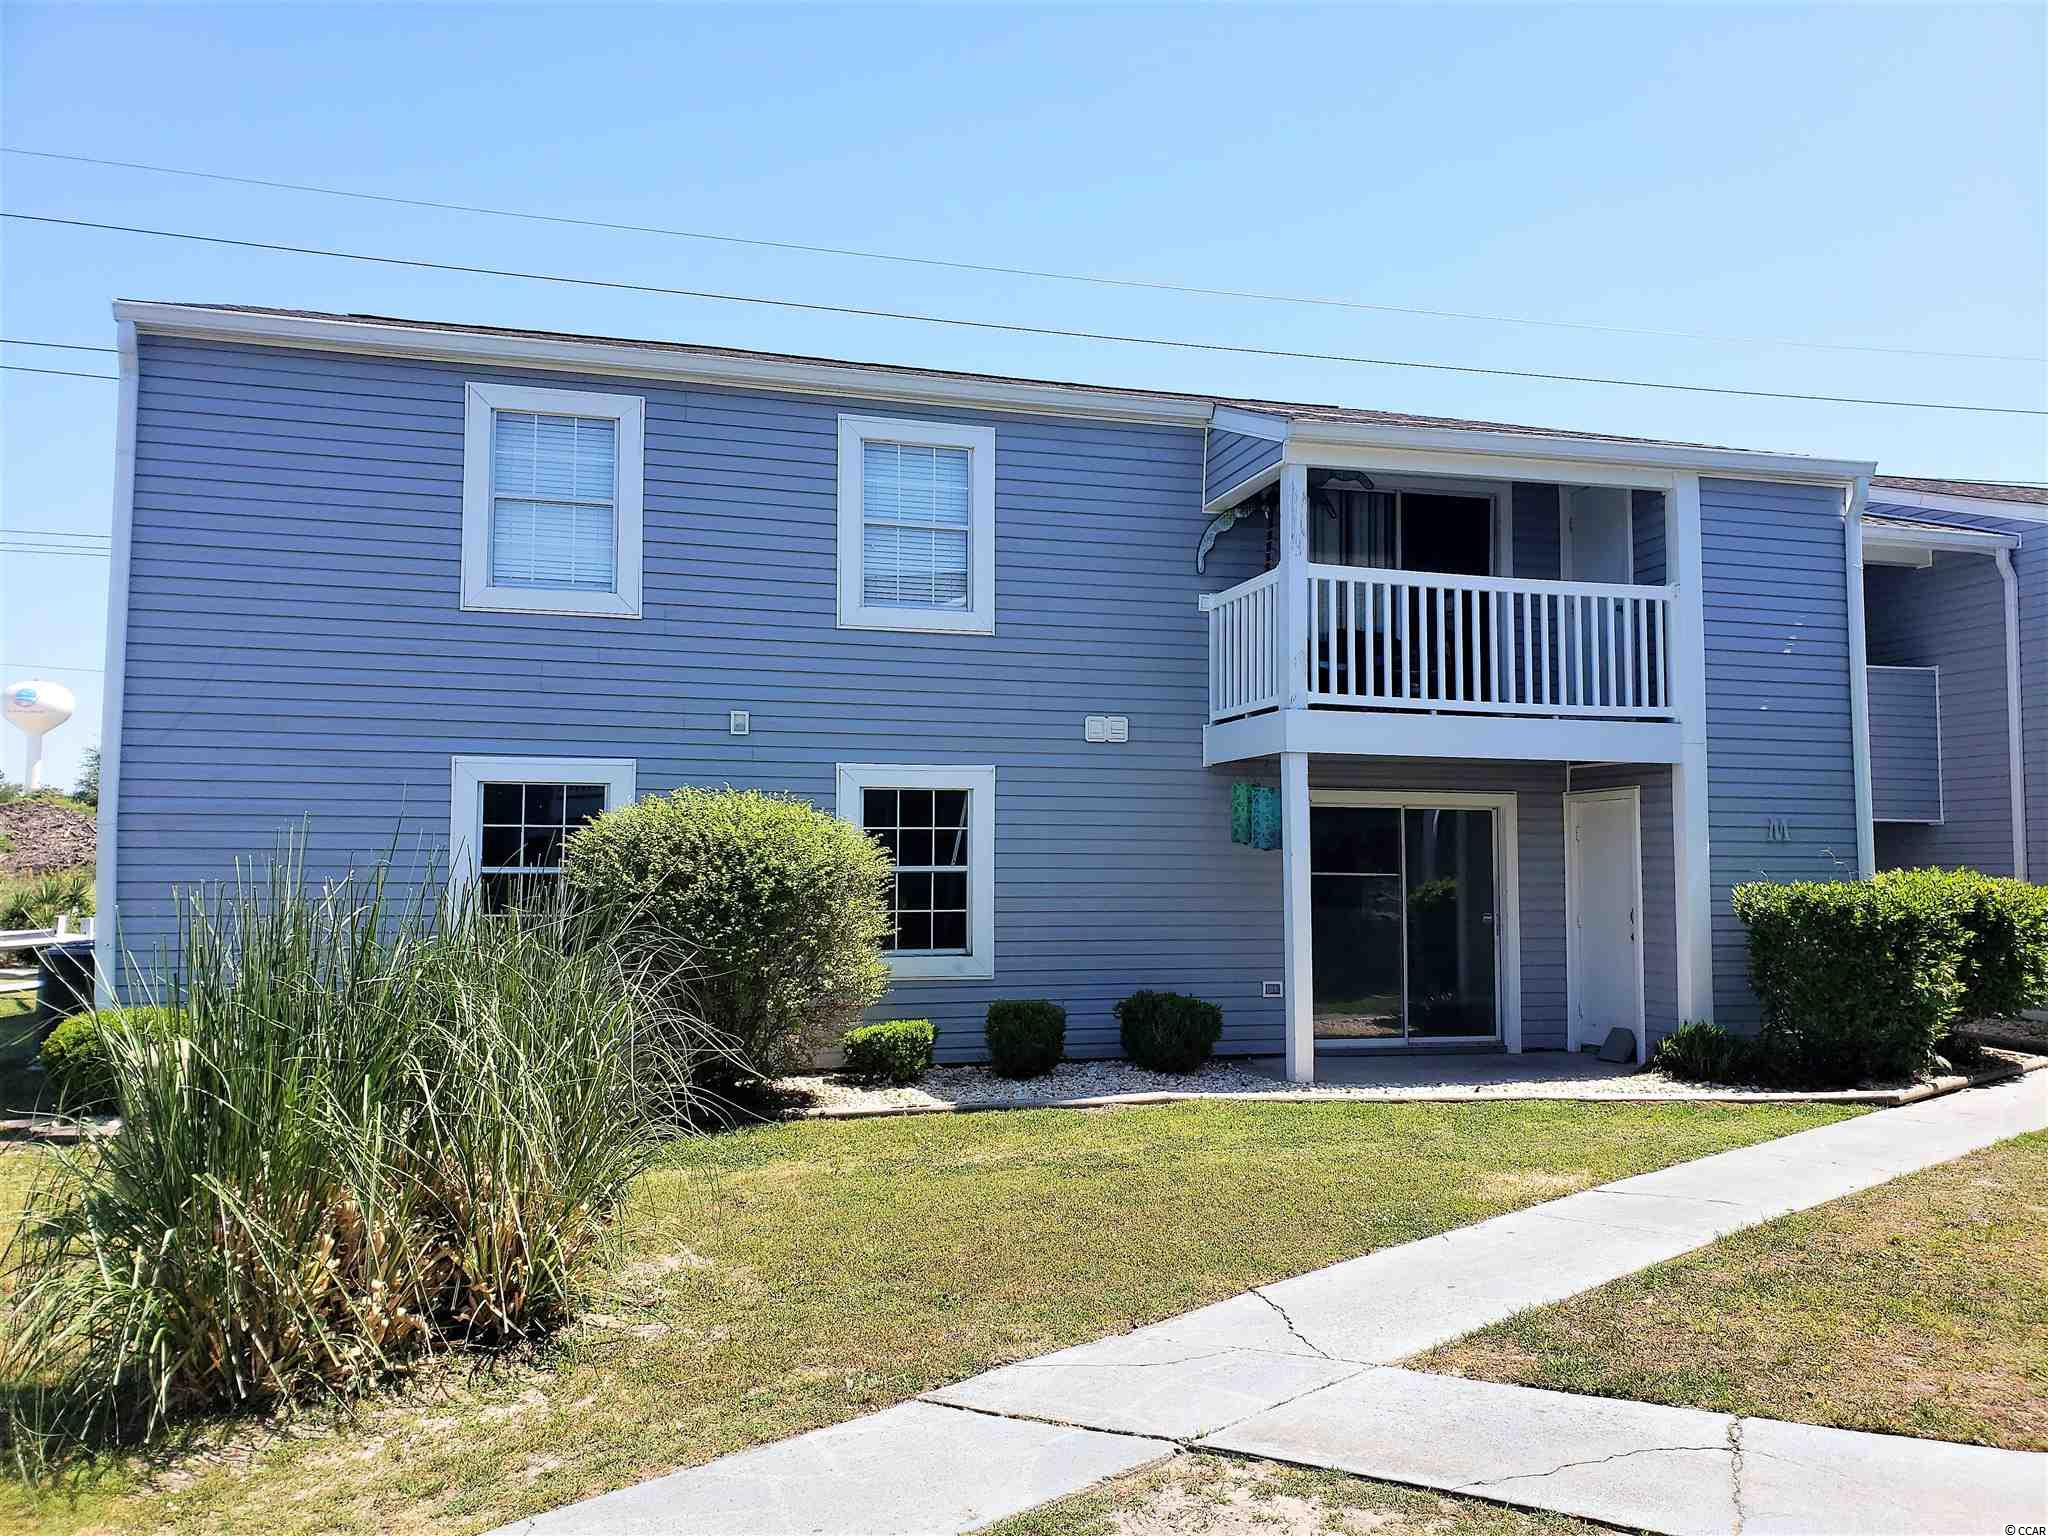 What a deal! A place near the beach for this price!!! The Retreat at Glenns Bay is less than 1 mile to the ocean and features a community pool, low monthly HOA dues, a full kitchen with breakfast bar, spacious master bedroom, walk in closet, and outside storage!! Looking for an amazing deal on a 2BR/2bth? THIS IS IT. Come see this Large 2 BR, 2 BA with balcony. Only .9 miles from Surfside Beach fishing pier, the beach and the Atlantic Ocean. Convenient to outstanding shopping and fine dining. You will not find a better deal in Surfside Beach! Super clean and fresh and a nice, quiet but very convenient location in Surfside Beach. There  is also has nice community pool for your use. This is also the perfect opportunity to buy an income producing property, 2nd home or primary residence! This condo has been very well taken care of.  For you animal lovers, owners are allowed one pet under 30 pounds in Retreat At Glenns Bay.